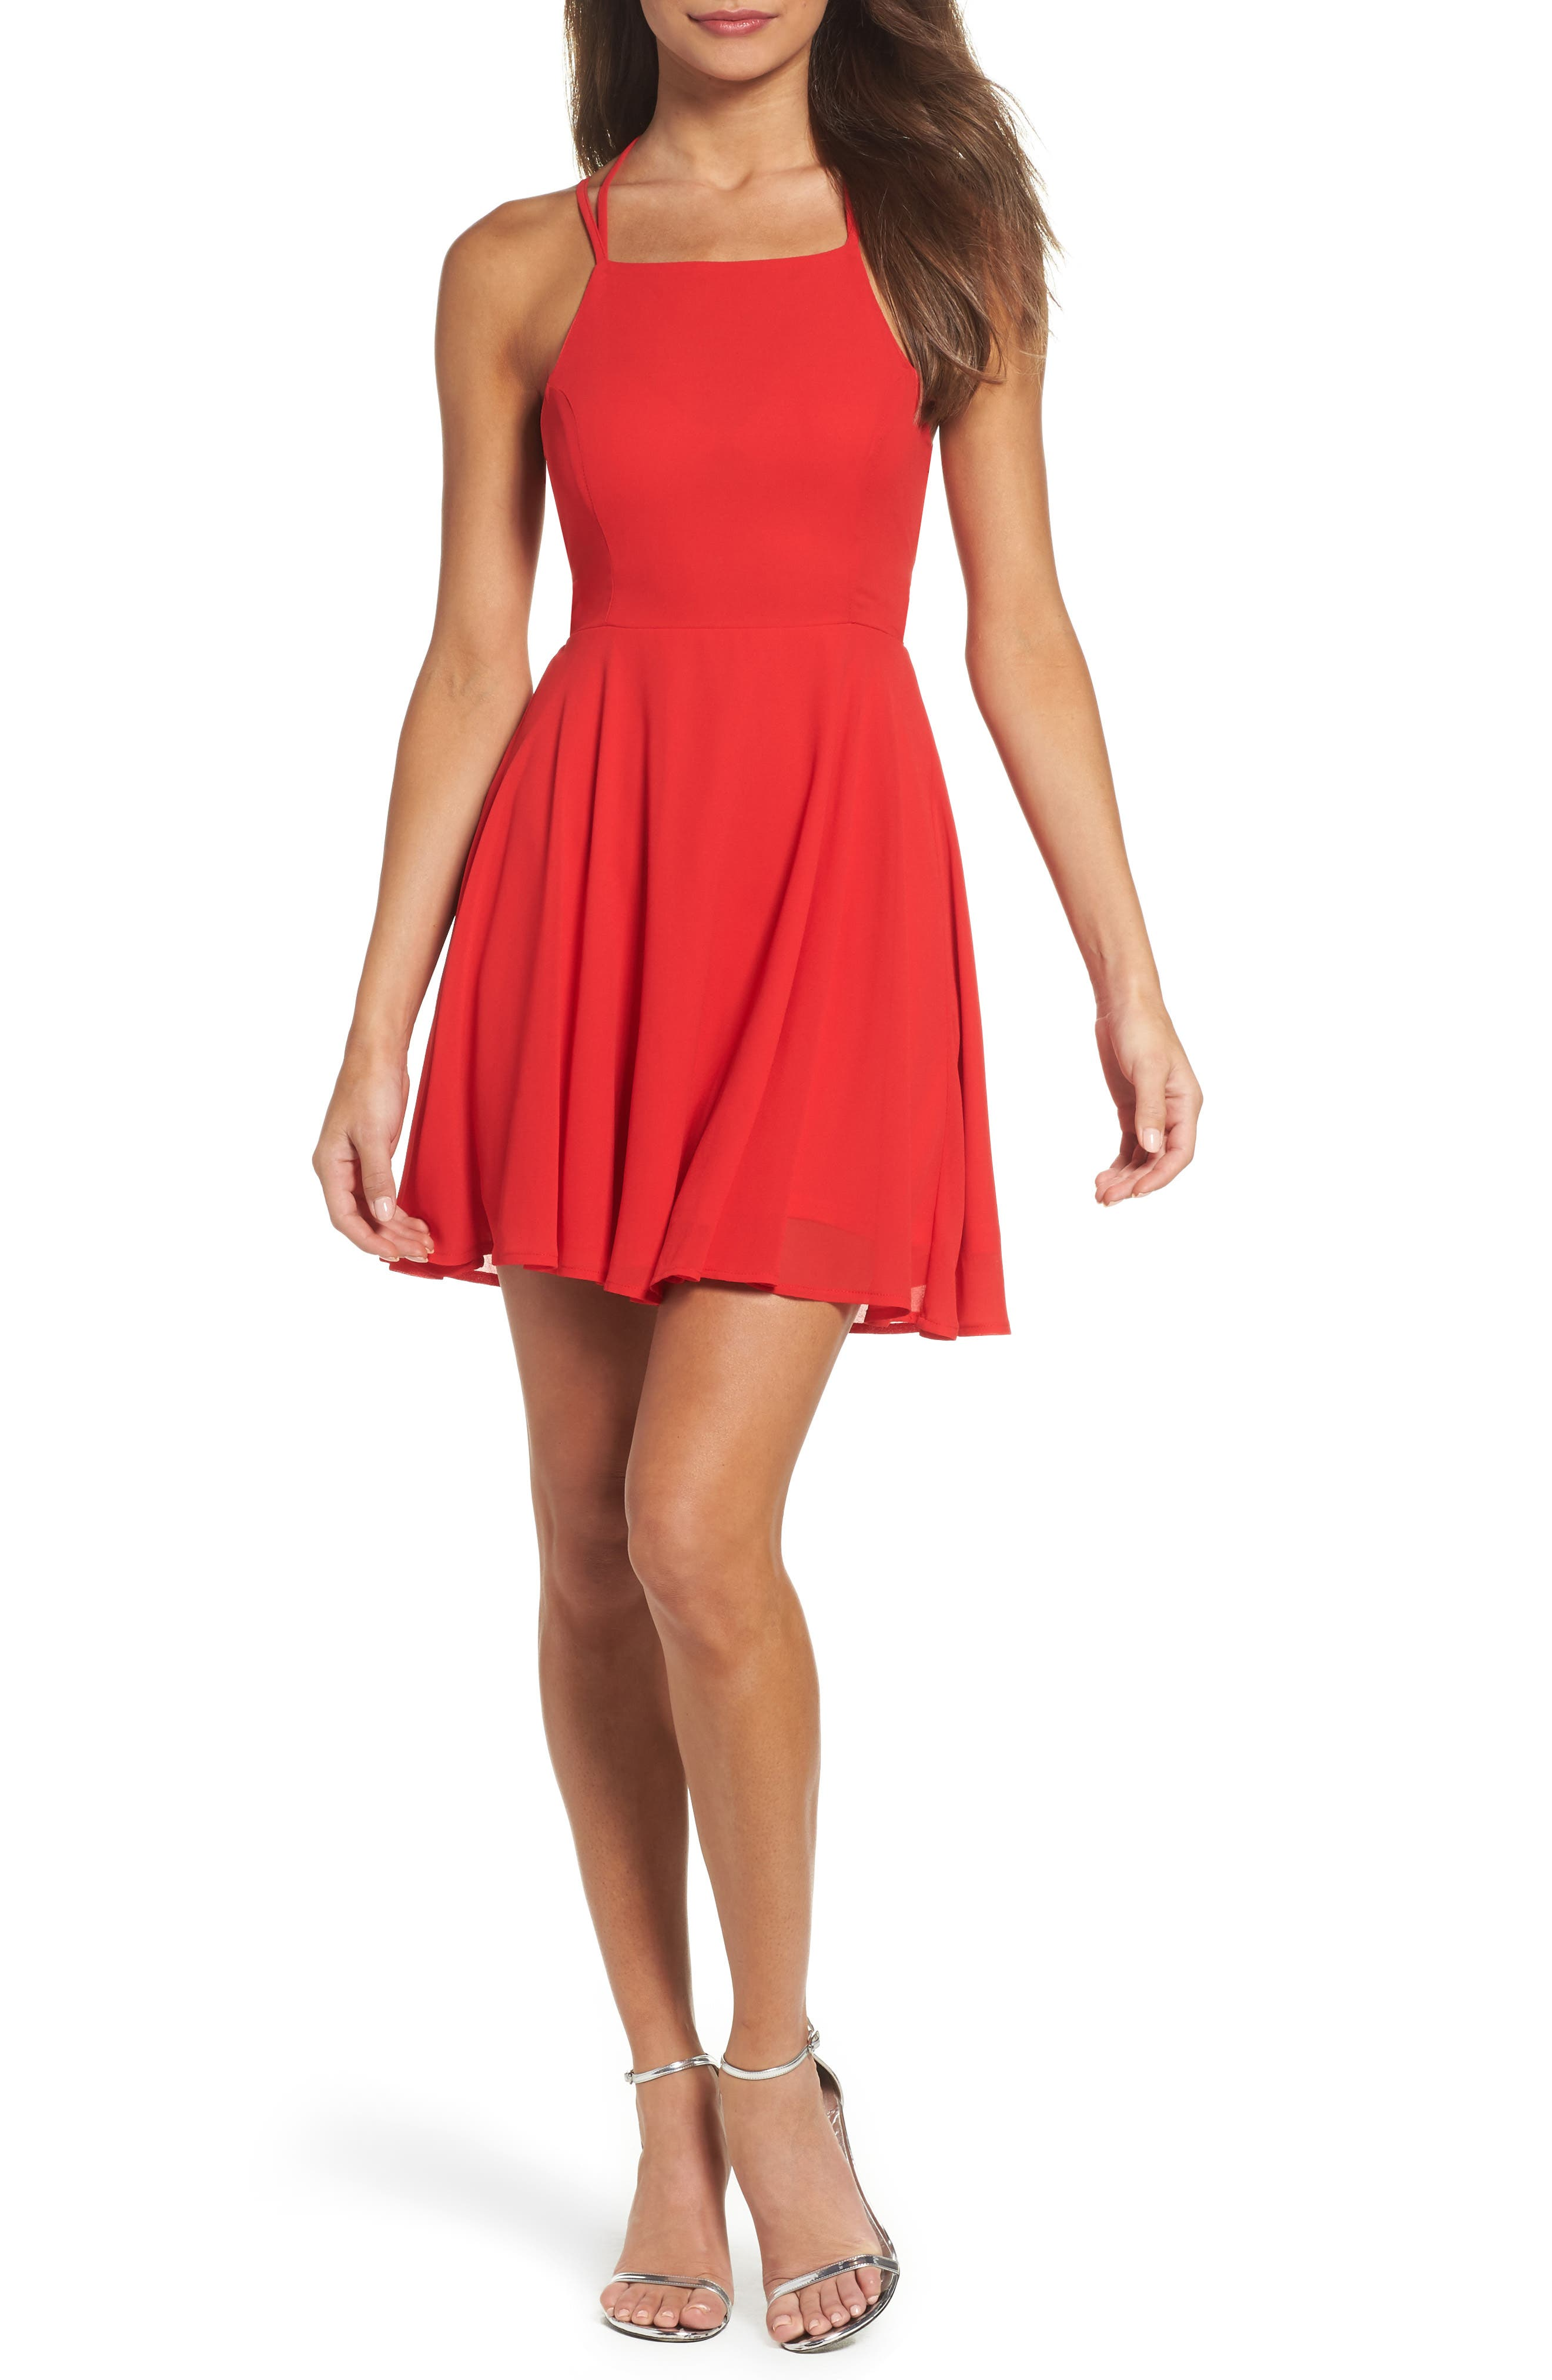 Lulus Good Deeds Lace-Up Skater Dress, Red